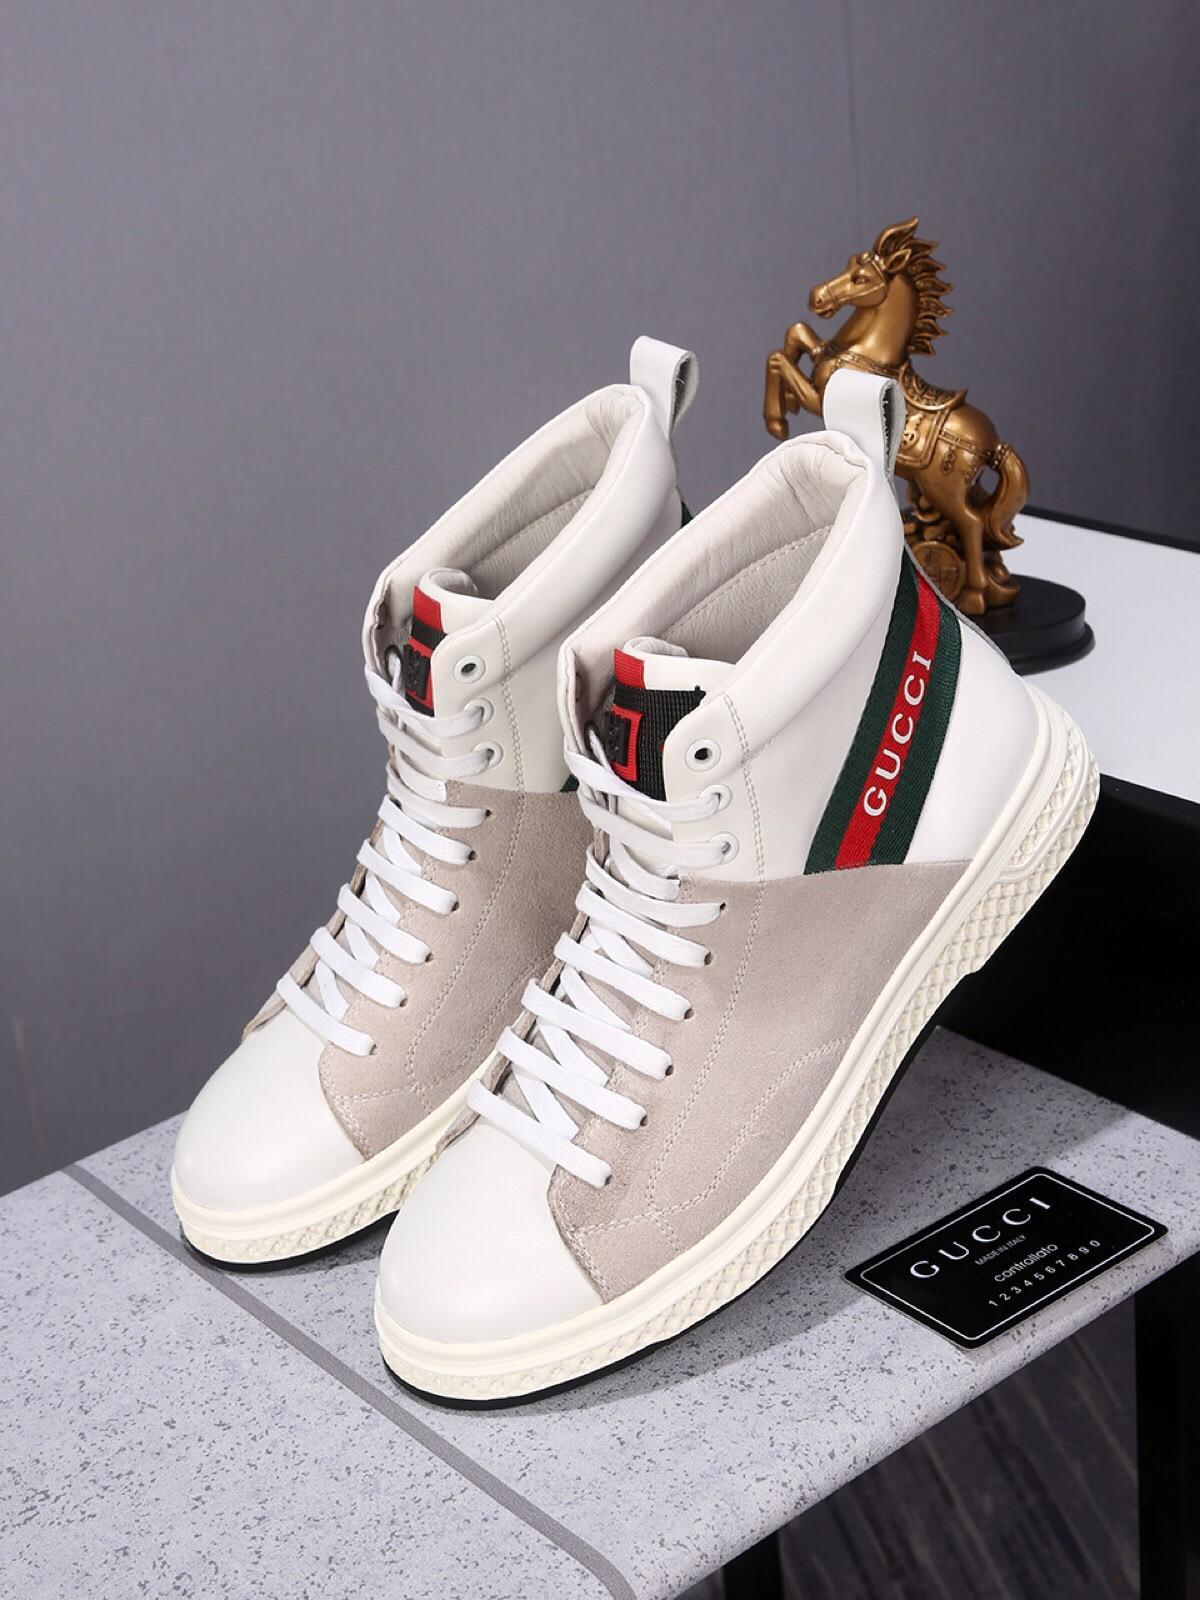 6f0e0cfac33 Red And Green Ribbon Brand Men s High-top Sneakers Luxury Leather ...